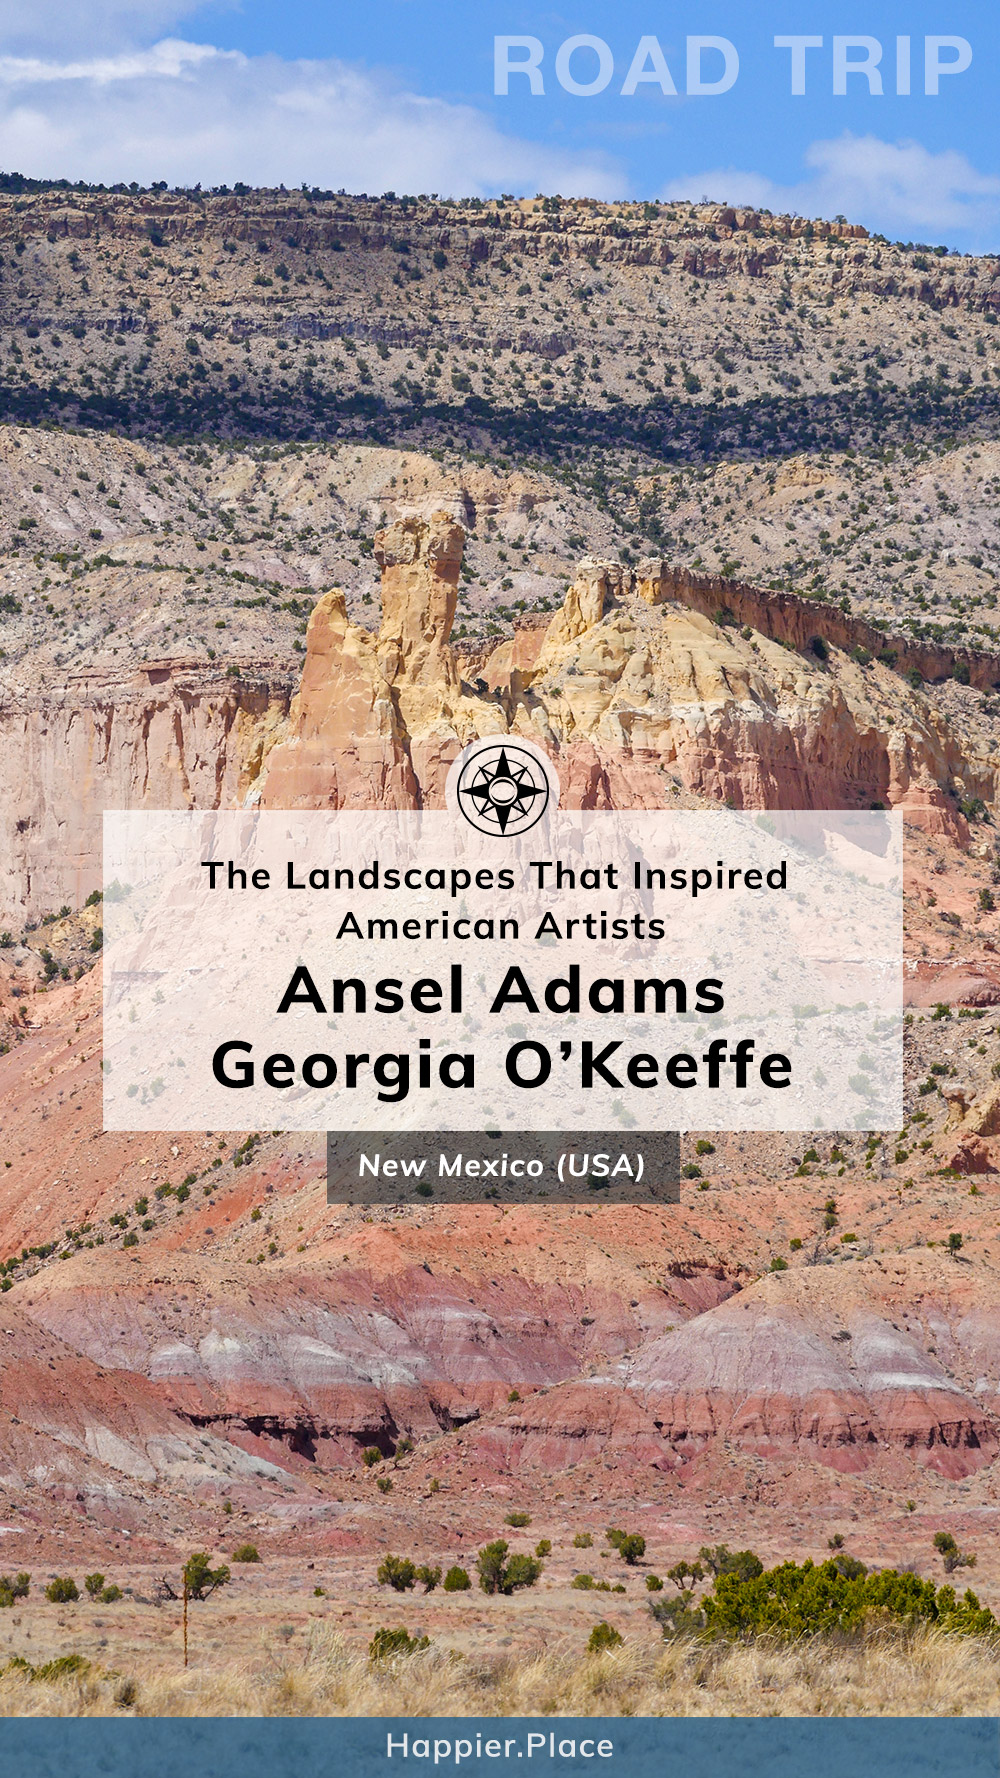 New Mexico: The Sights That Inspired Georgia O'Keeffe and Ansel Adams